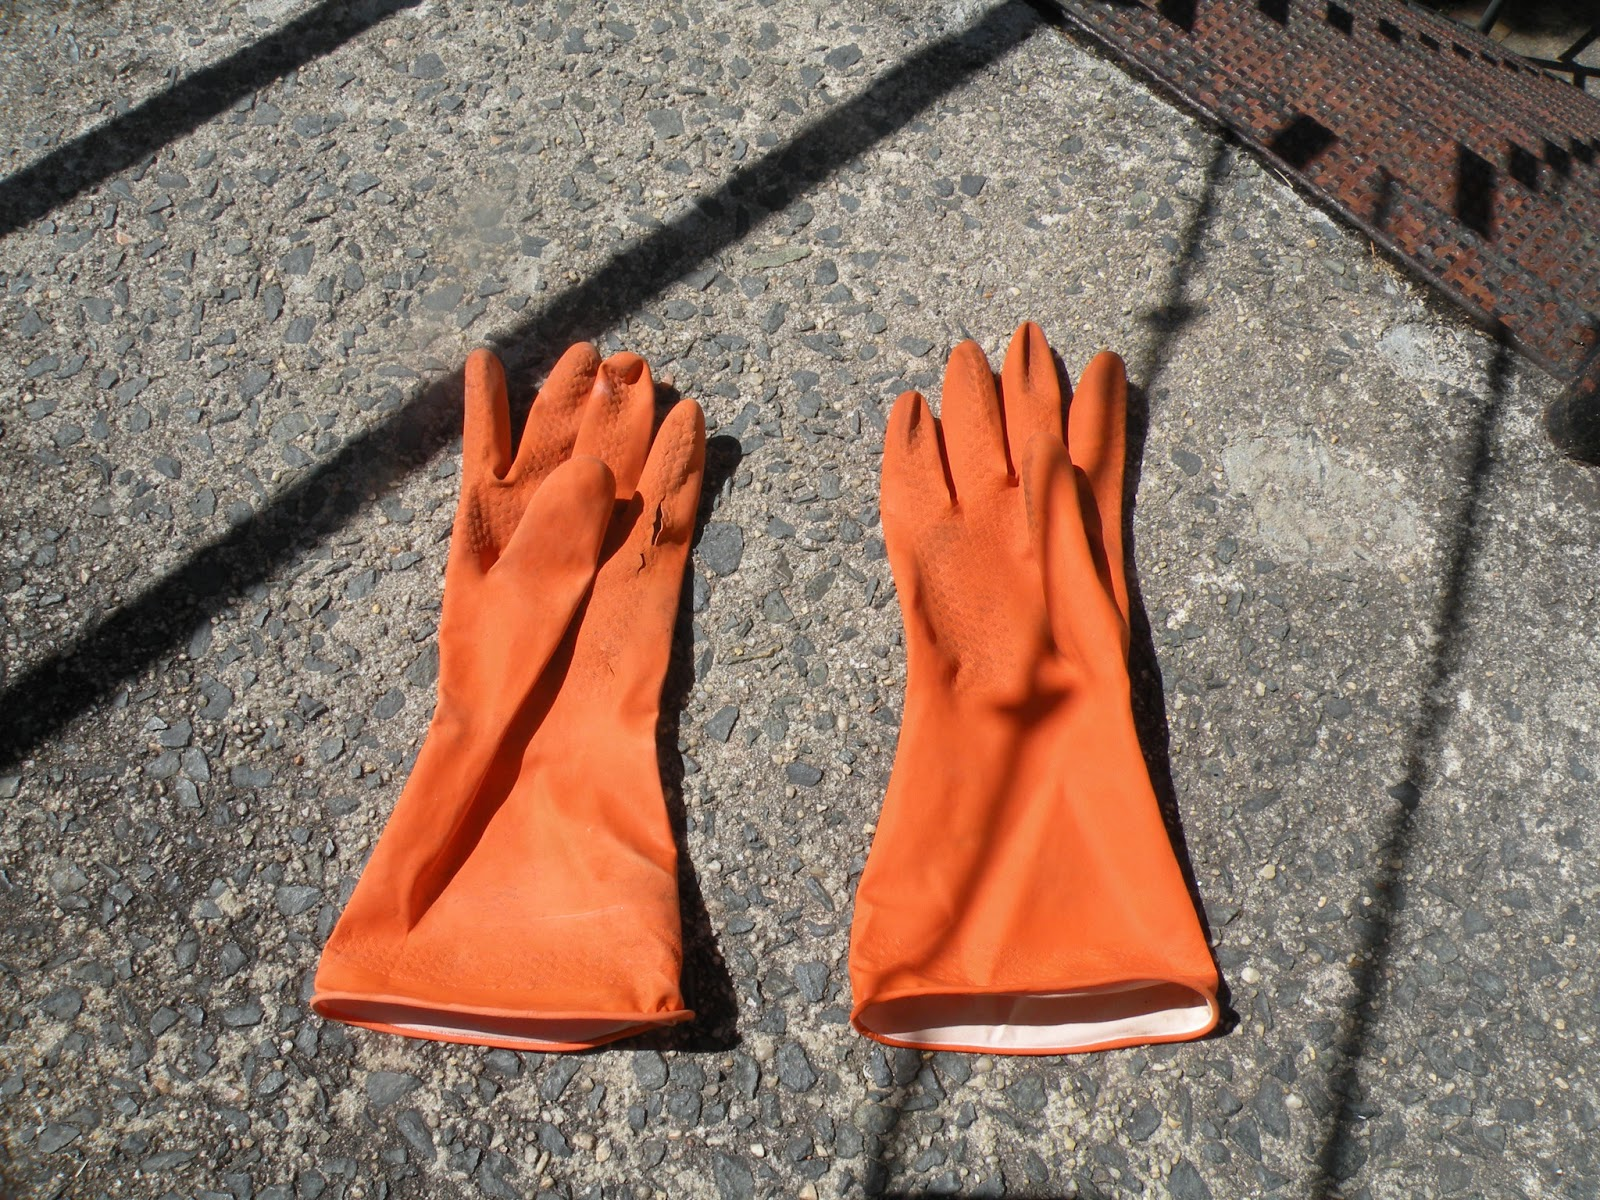 if you turn a left-handed glove inside out it fits